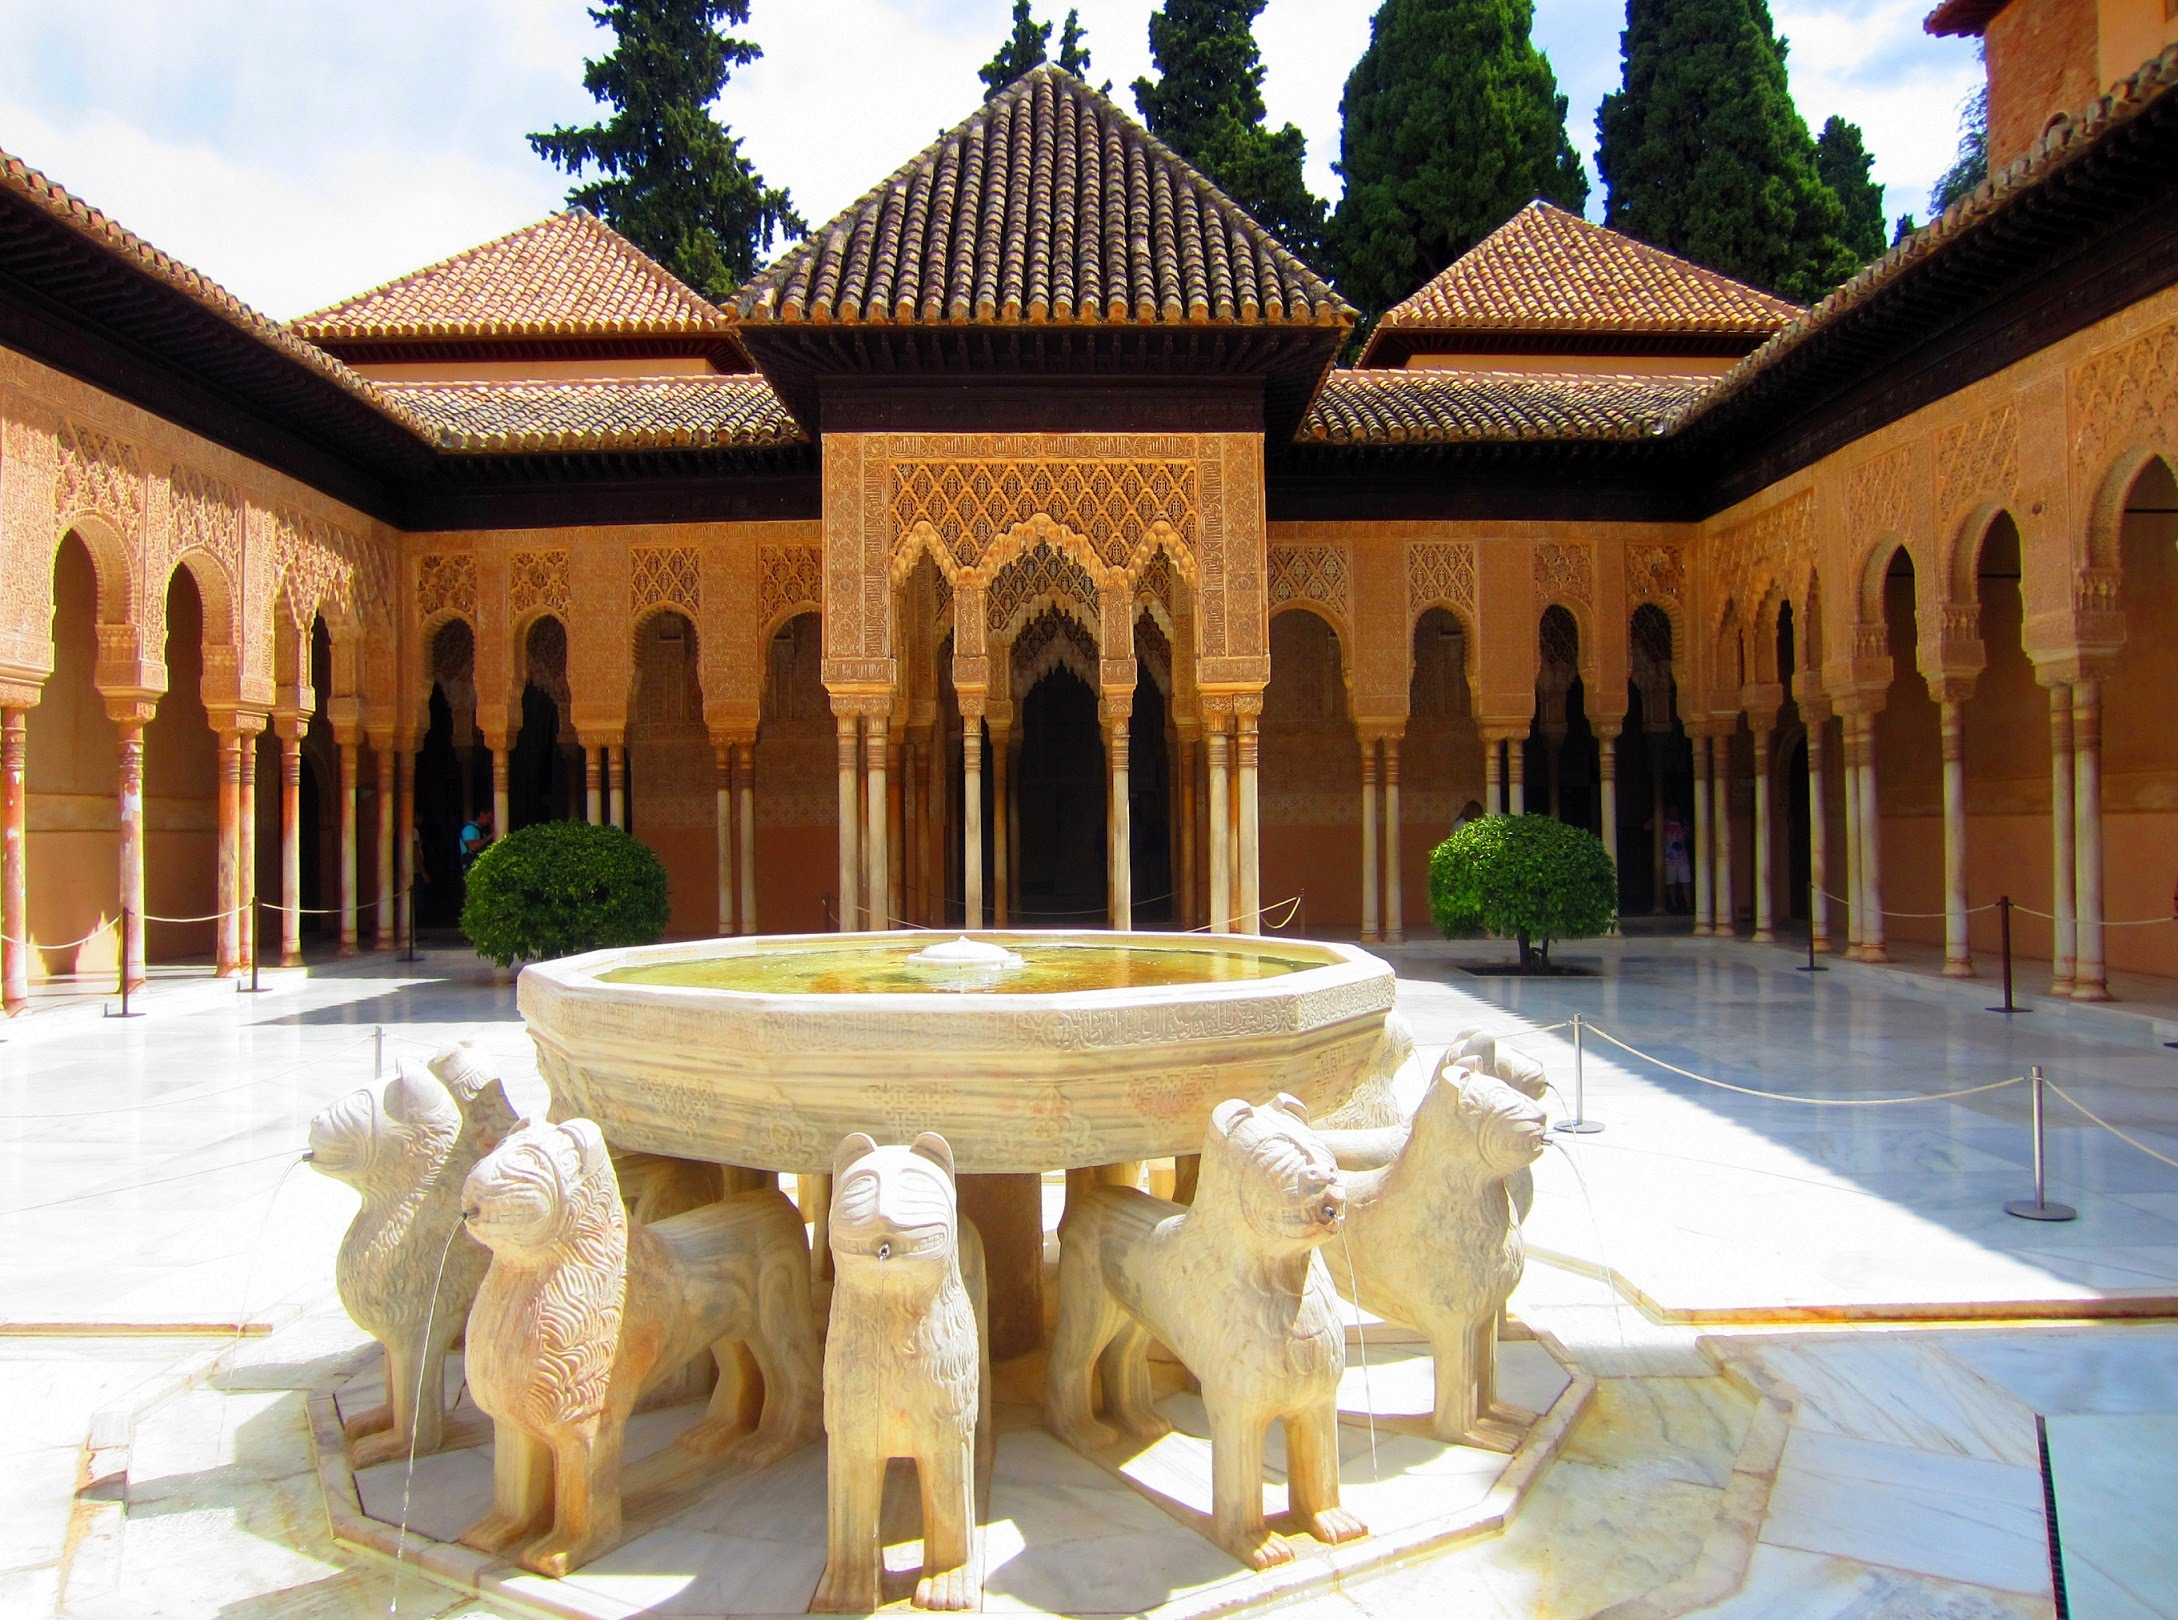 Alhambra-Court-of-Lions.jpg